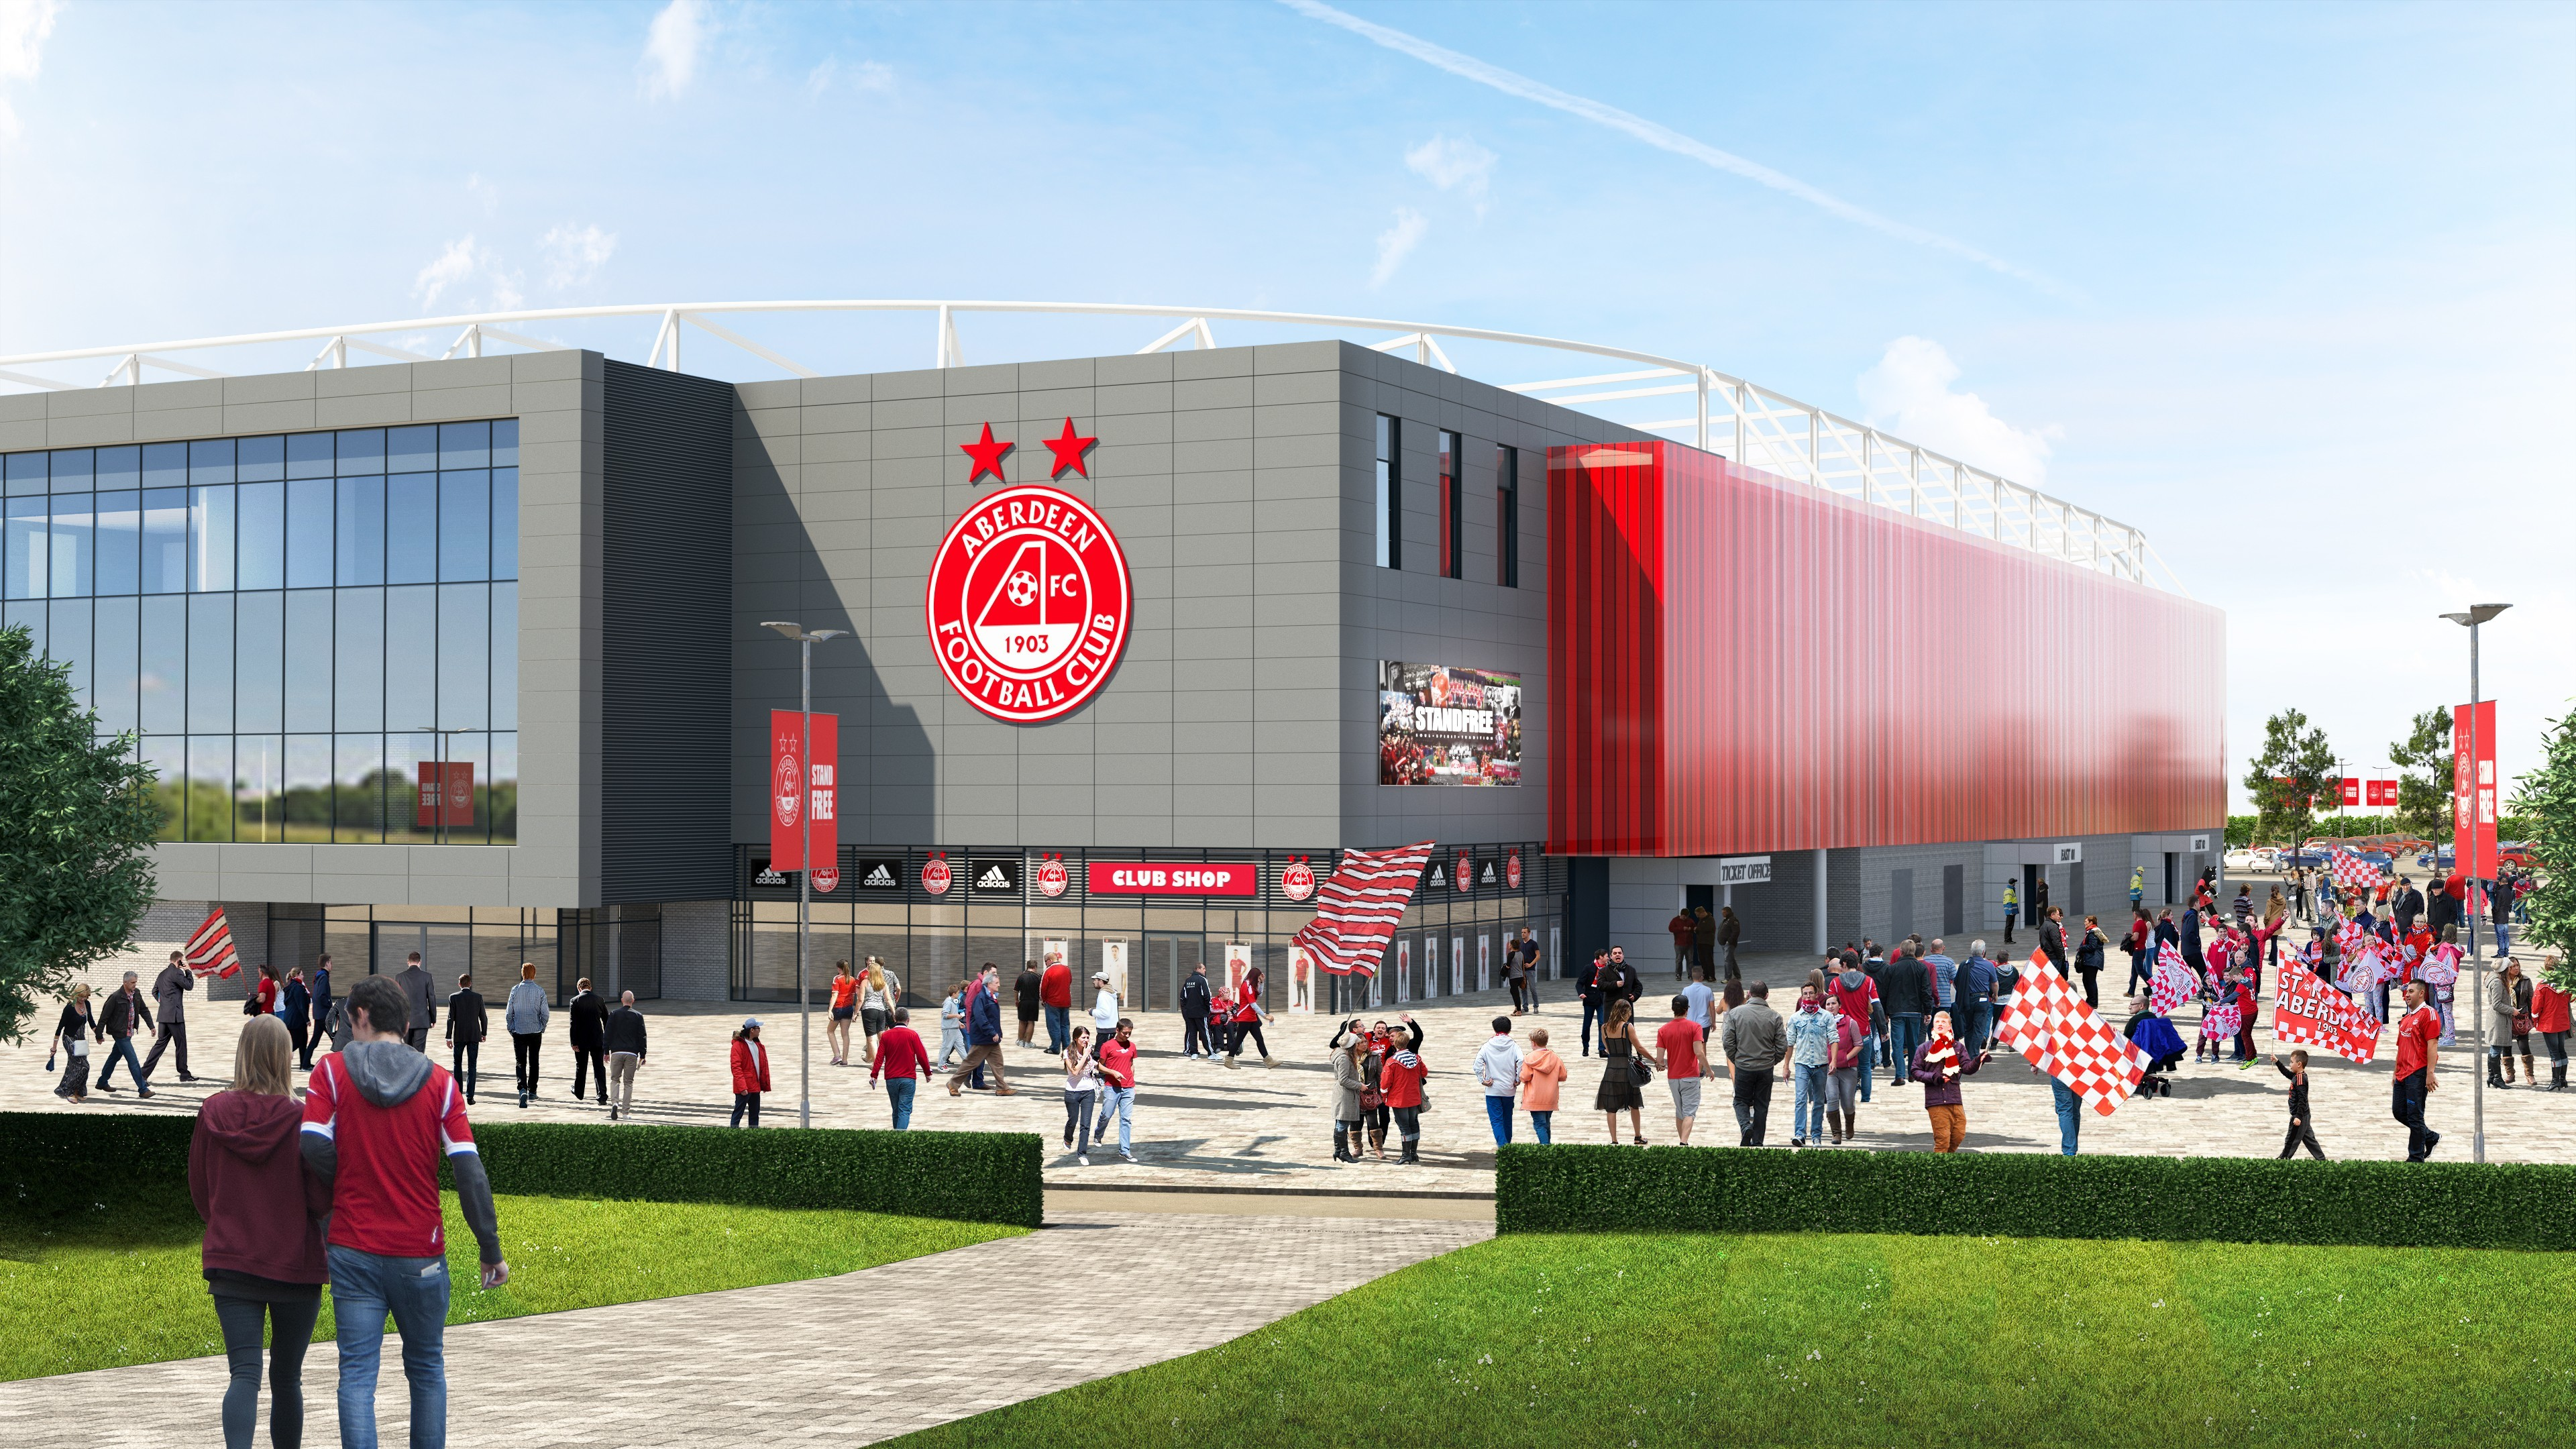 An artist's impression of how the Kingsford stadium, which may hold gigs, could look.